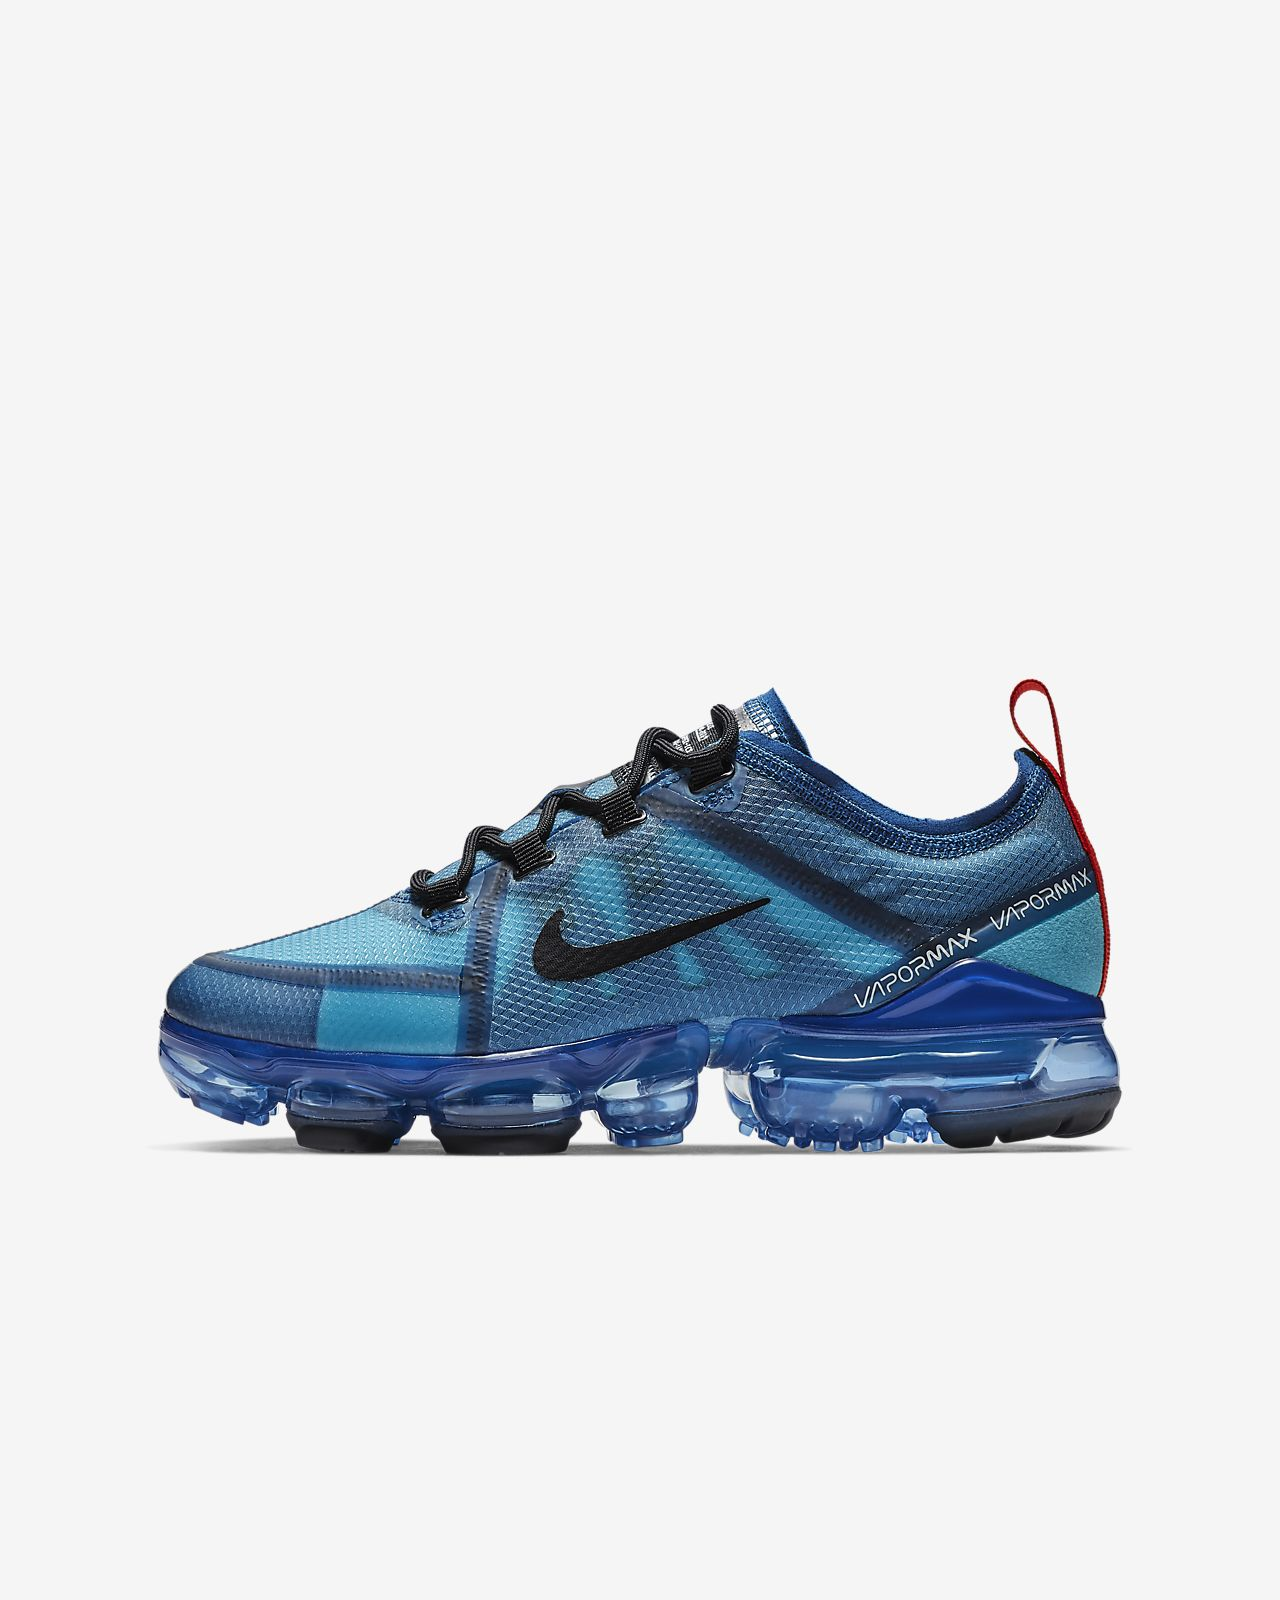 7b63d431f2f Nike Air VaporMax 2019 Big Kids  Shoe. Nike.com